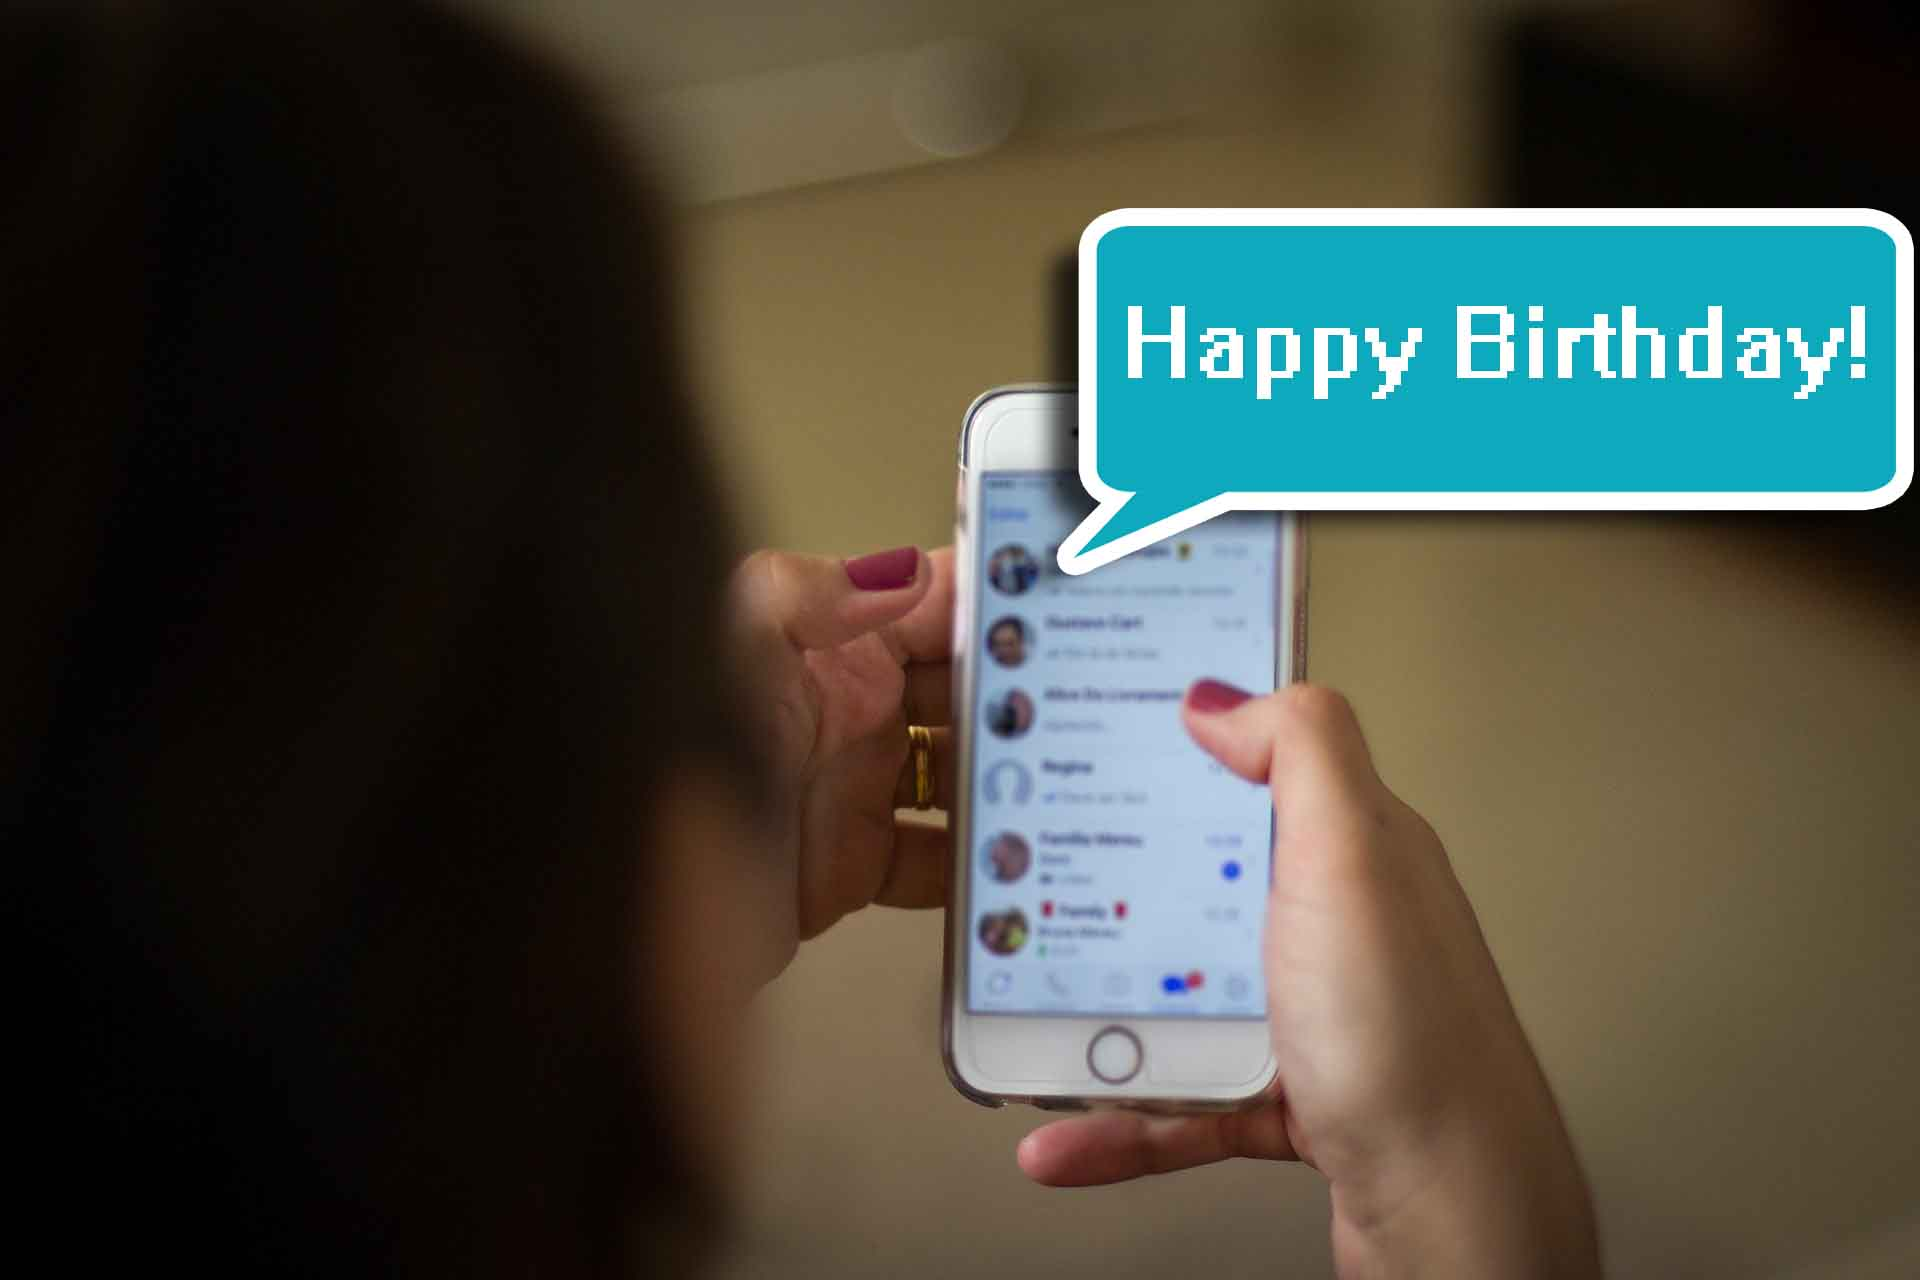 Reply to Birthday Wishes on WhatsApp Group